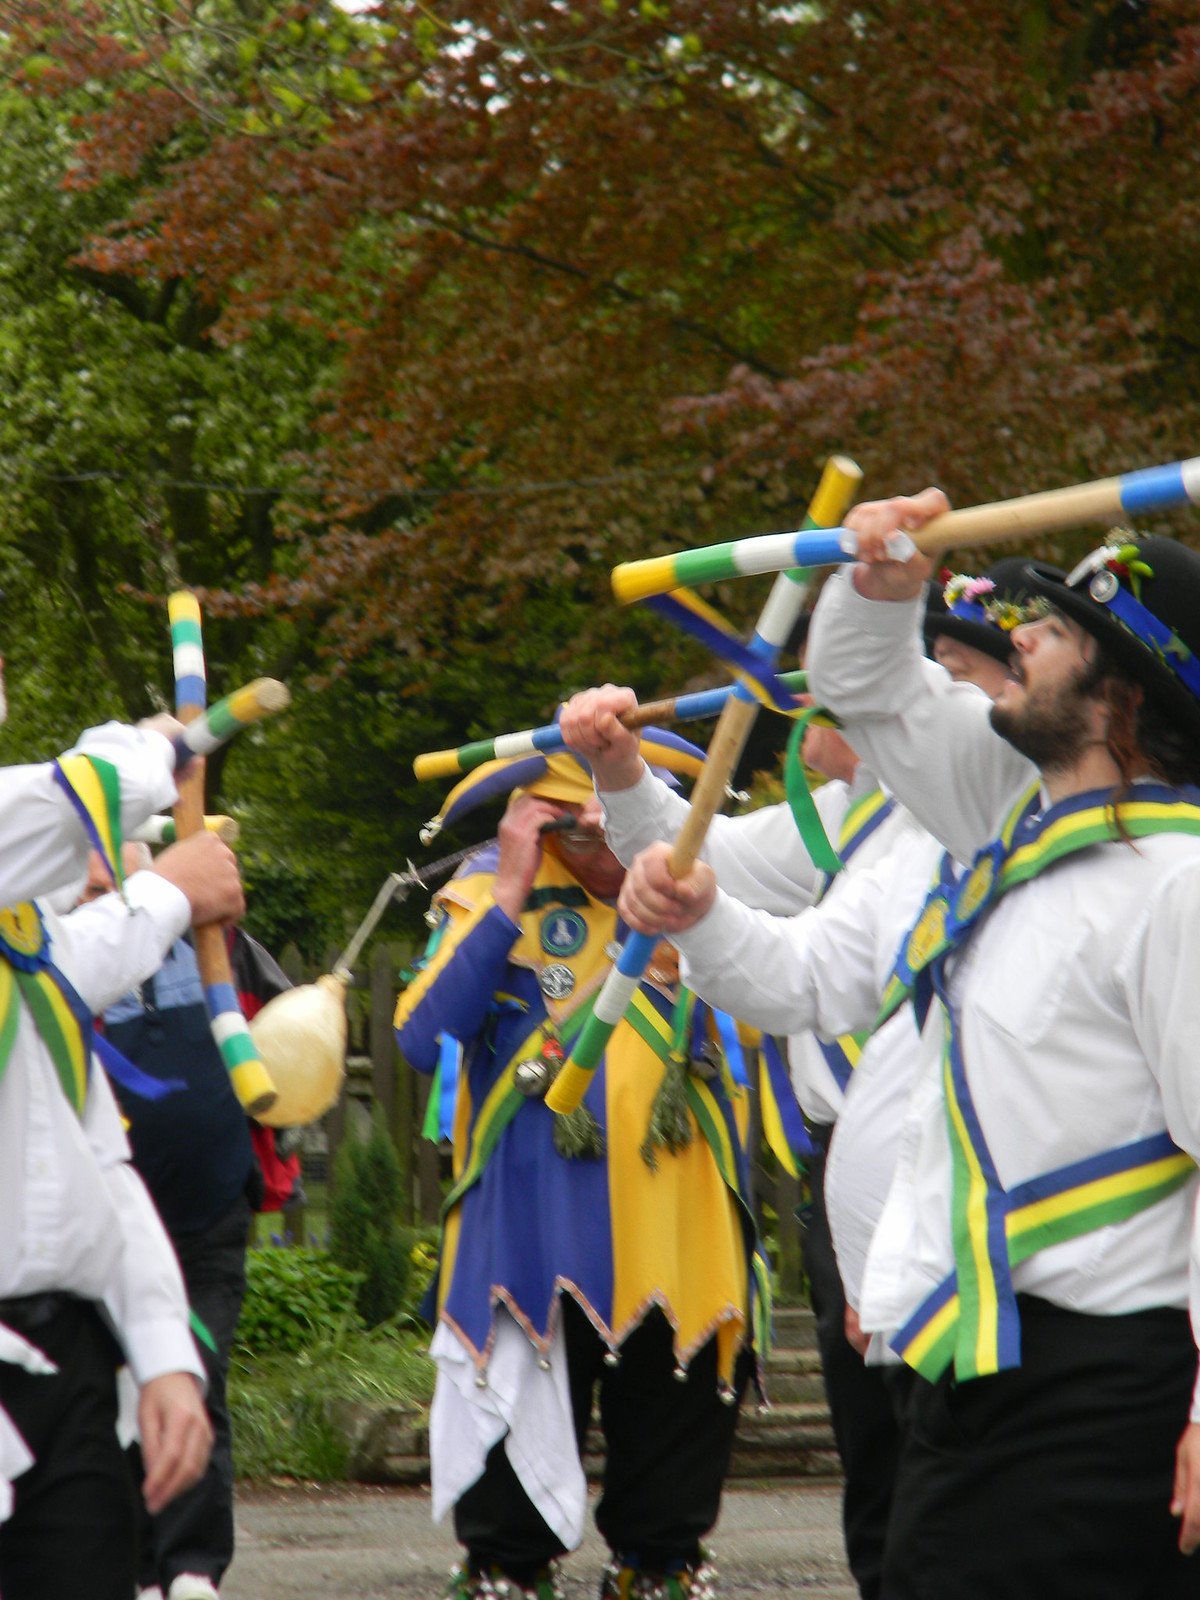 Letchworth Morris Baldock Circular Ashwell at Home